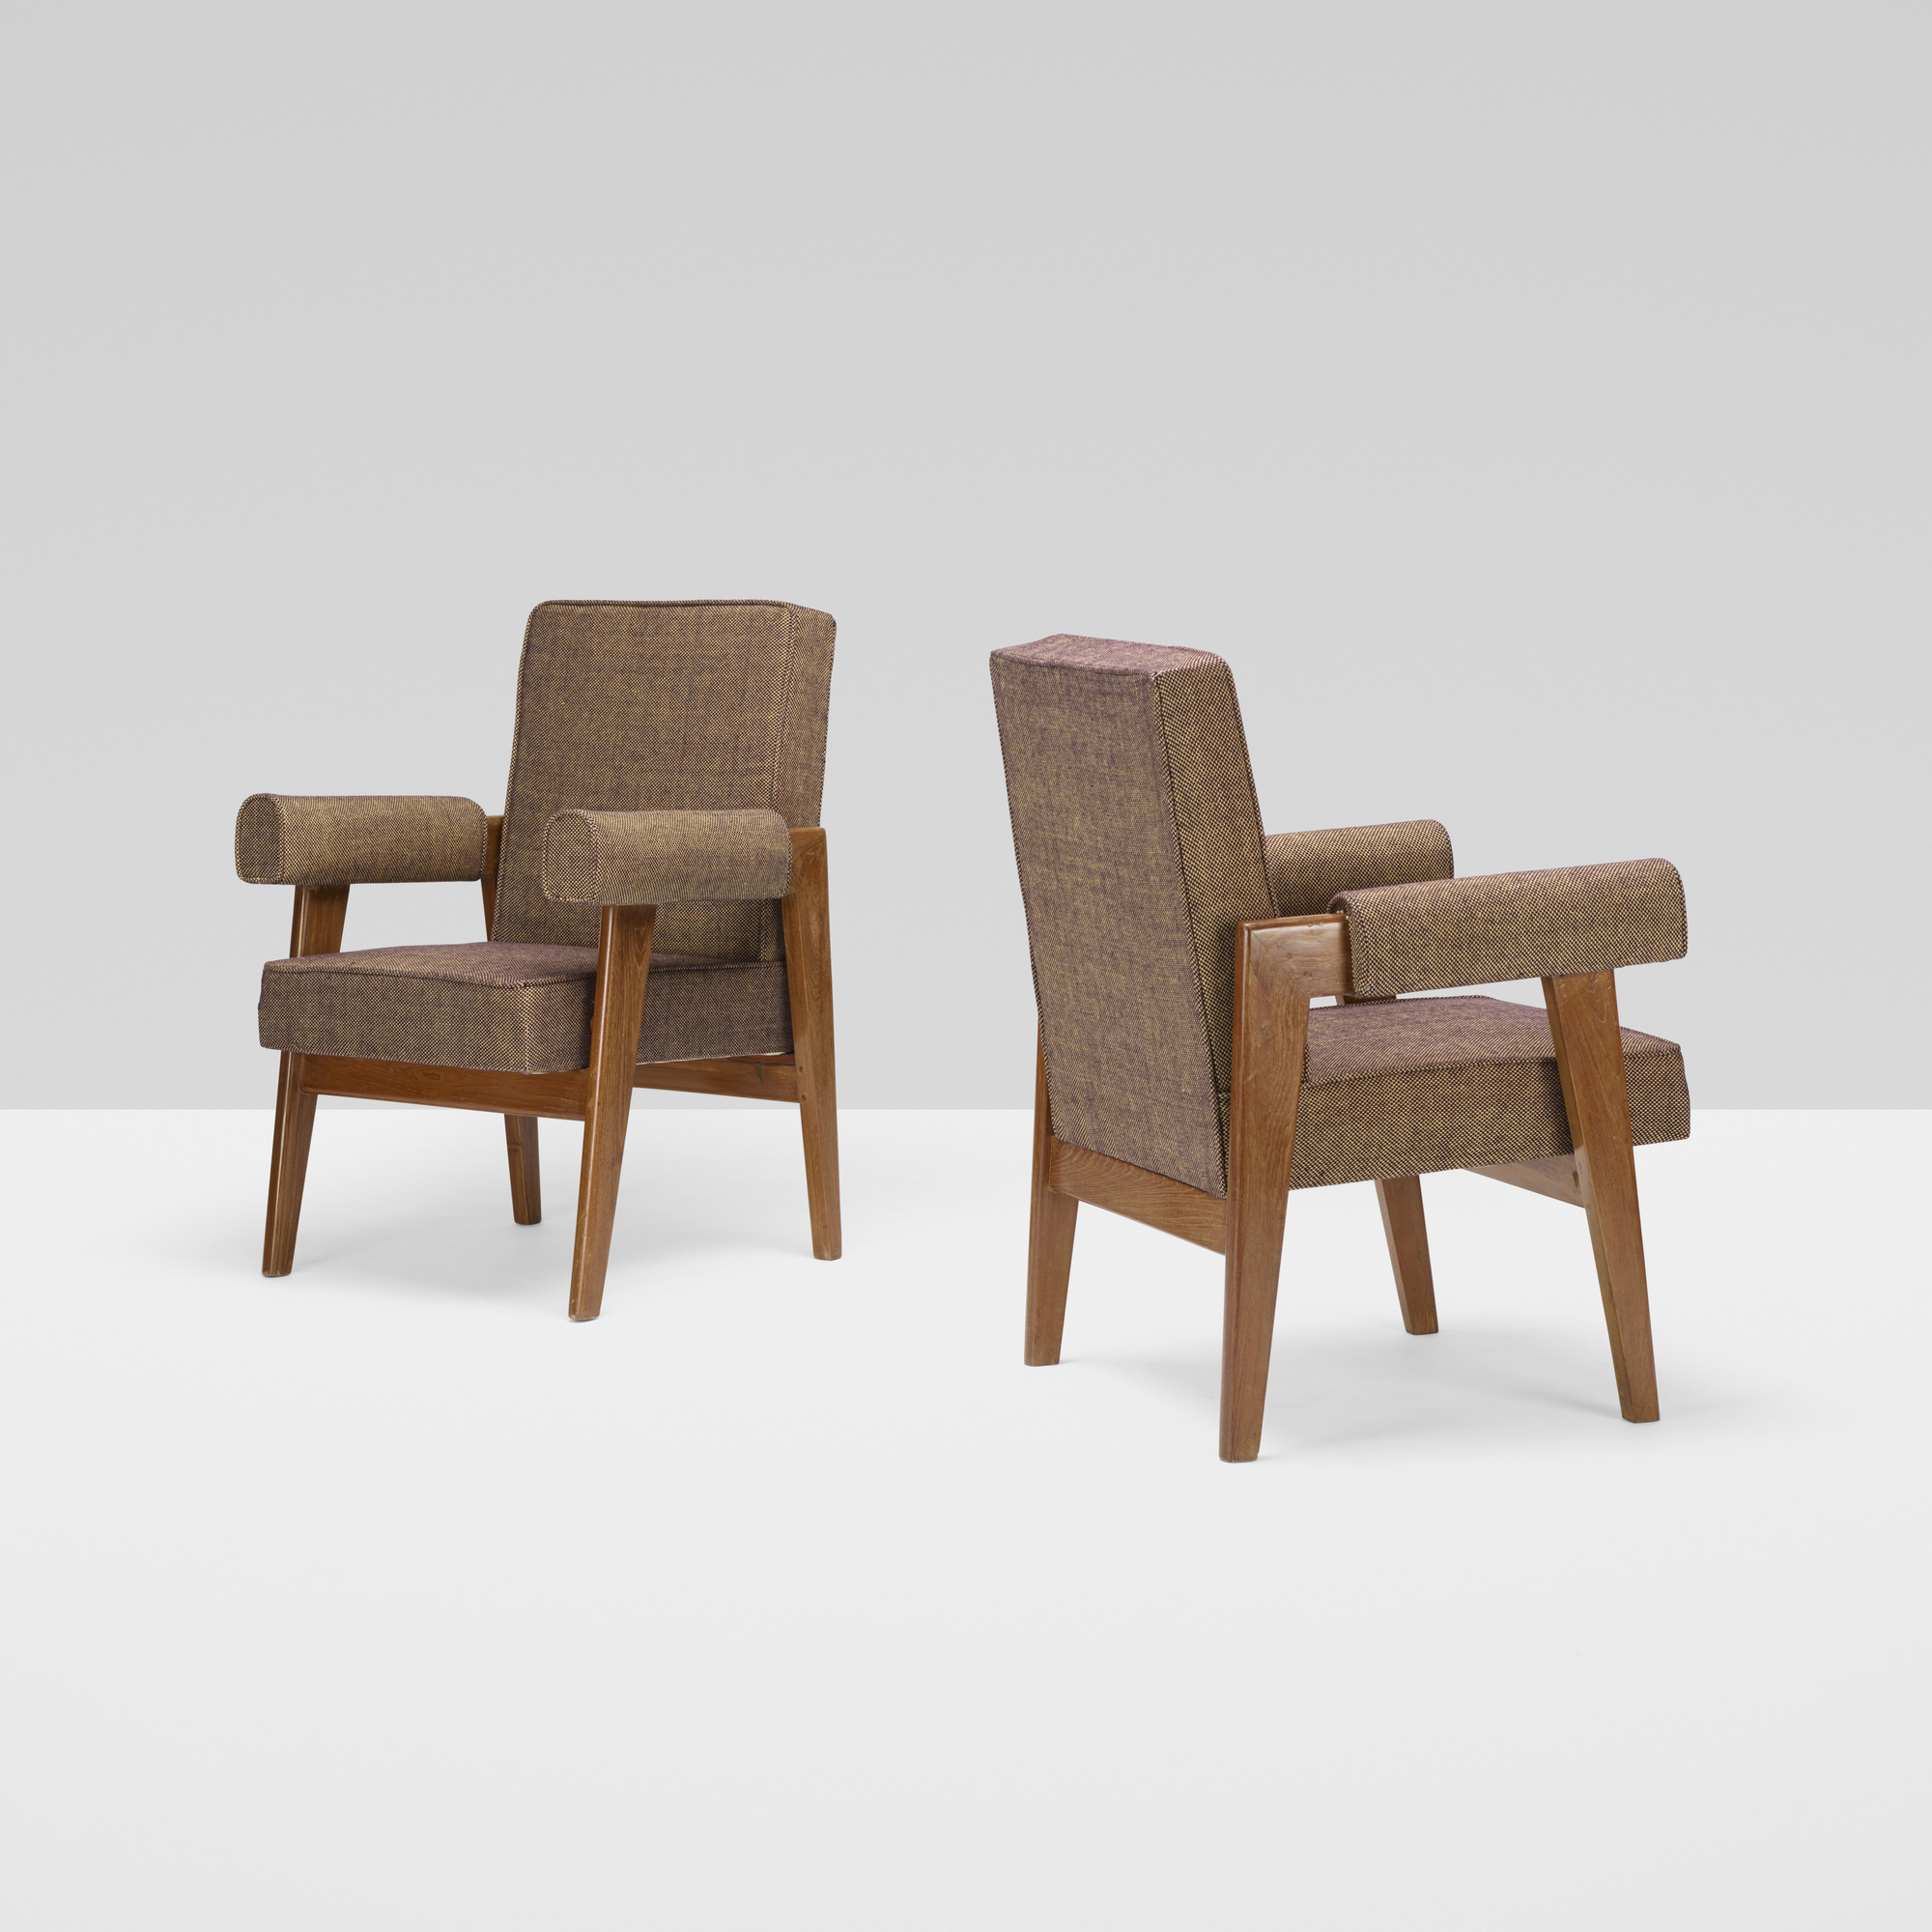 114: Le Corbusier and Pierre Jeanneret / pair of armchairs from the High Court, Chandigarh (2 of 4)